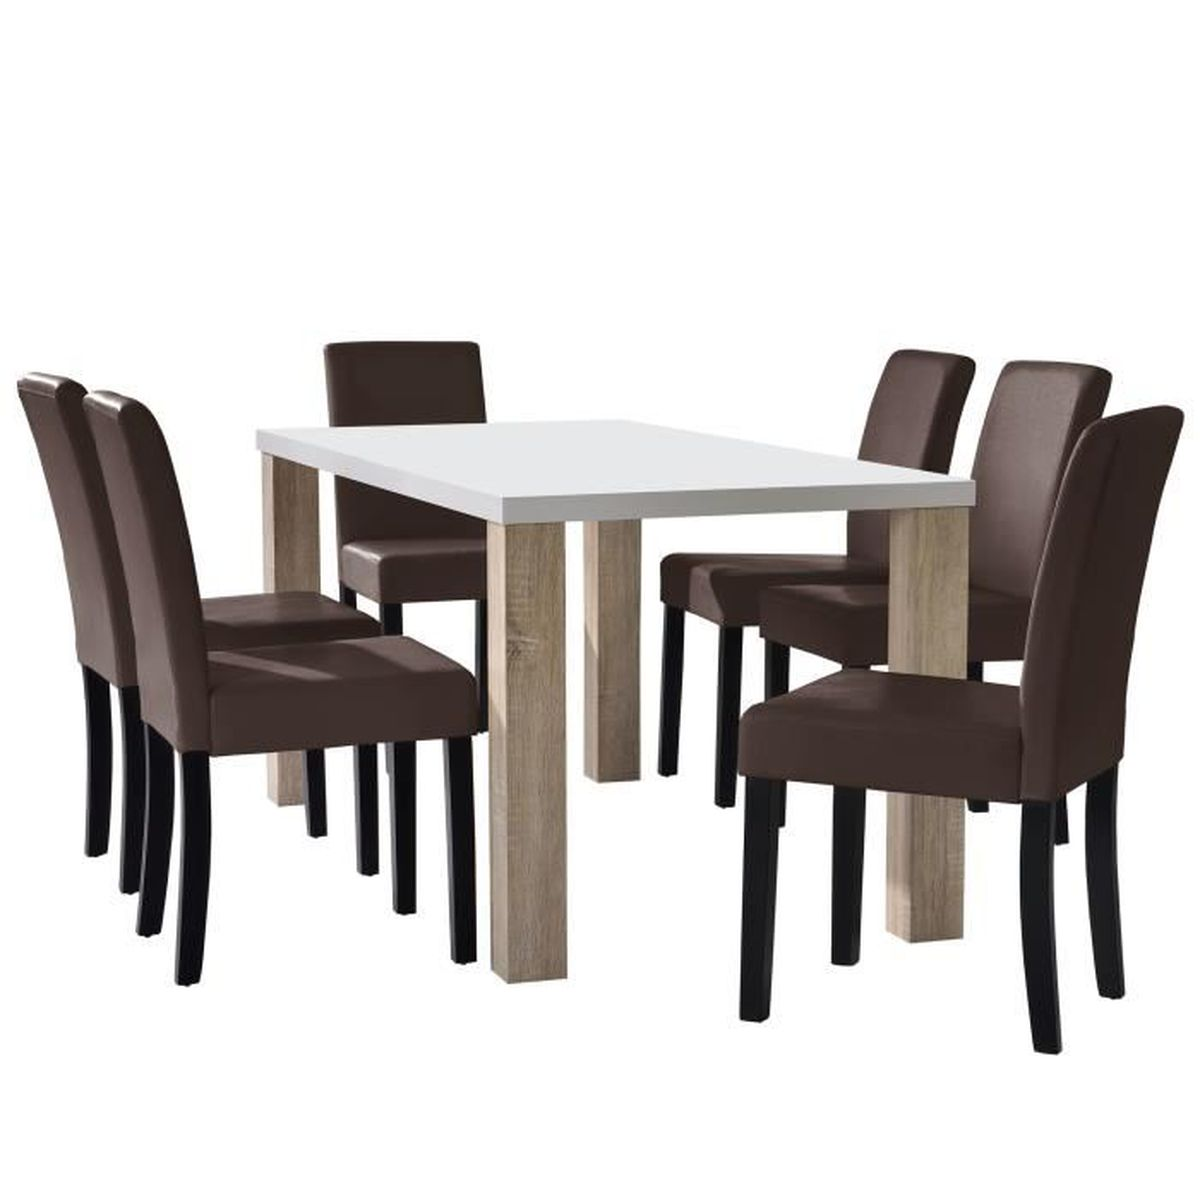 Table manger ch ne blanc avec 6 chaises marron for Chaises table a manger